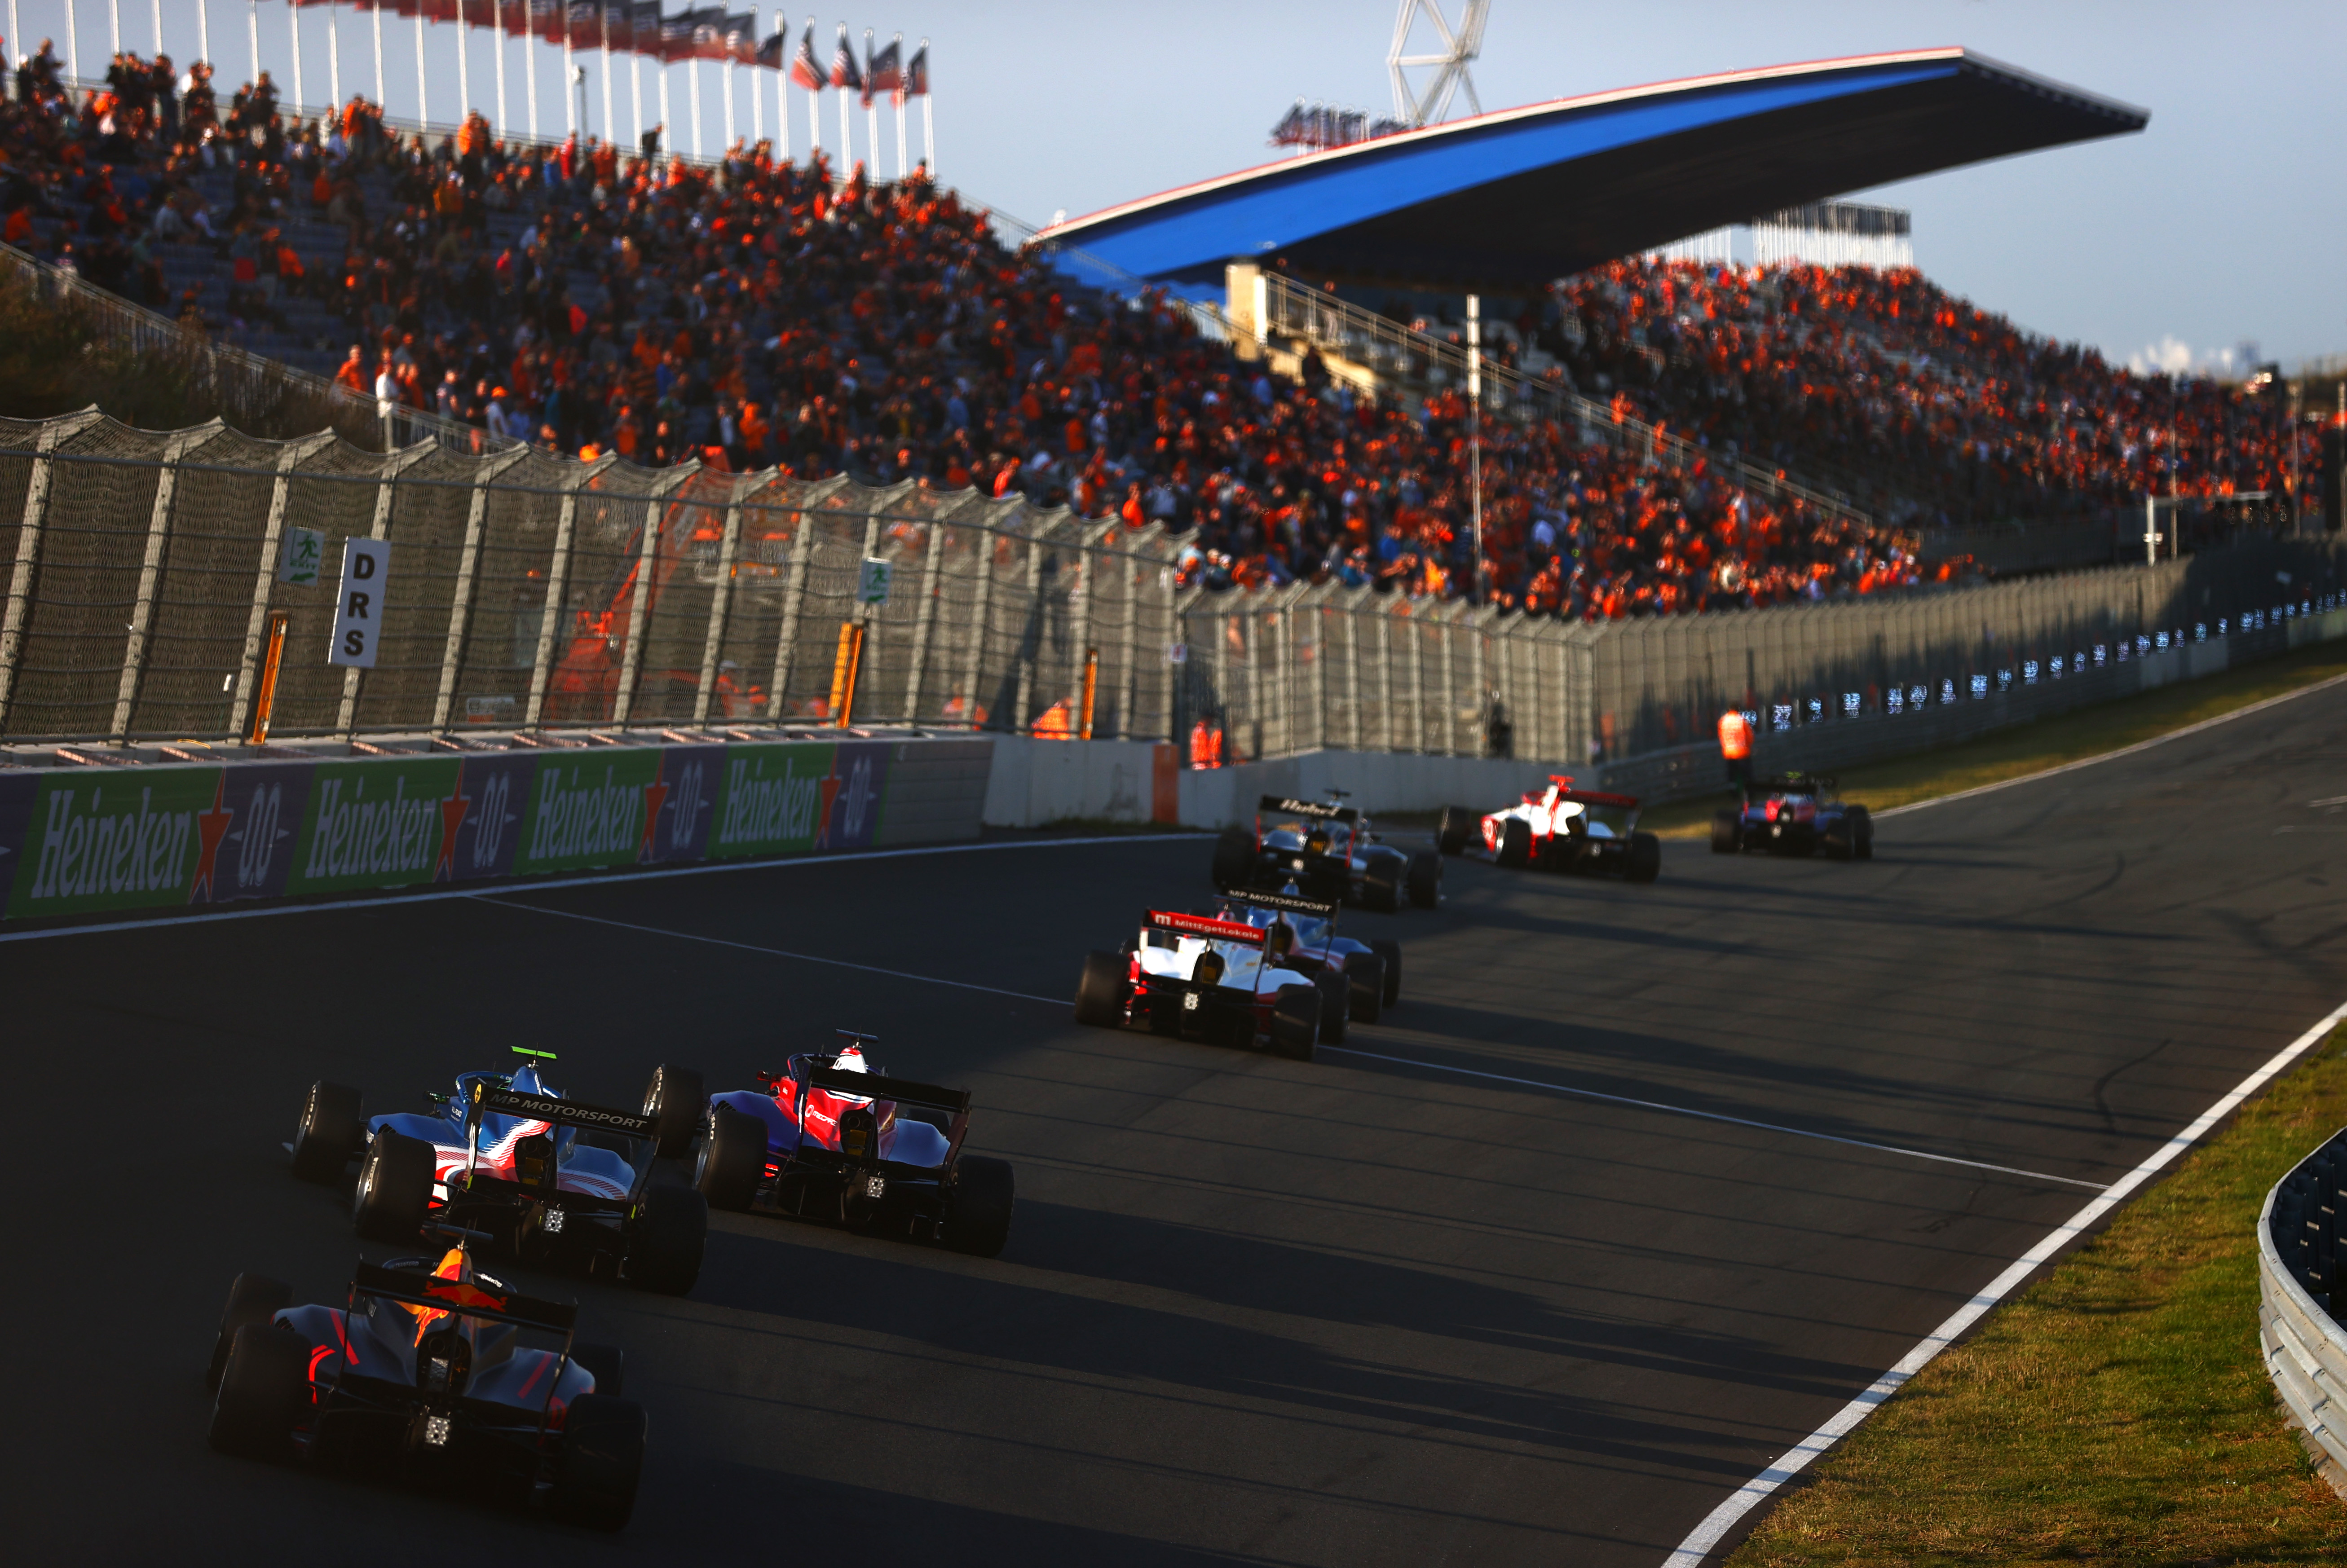 A general view of the action during race 2 of Round 6:Zandvoort of the Formula 3 Championship at Circuit Zandvoort on September 04, 2021 in Zandvoort, Netherlands.